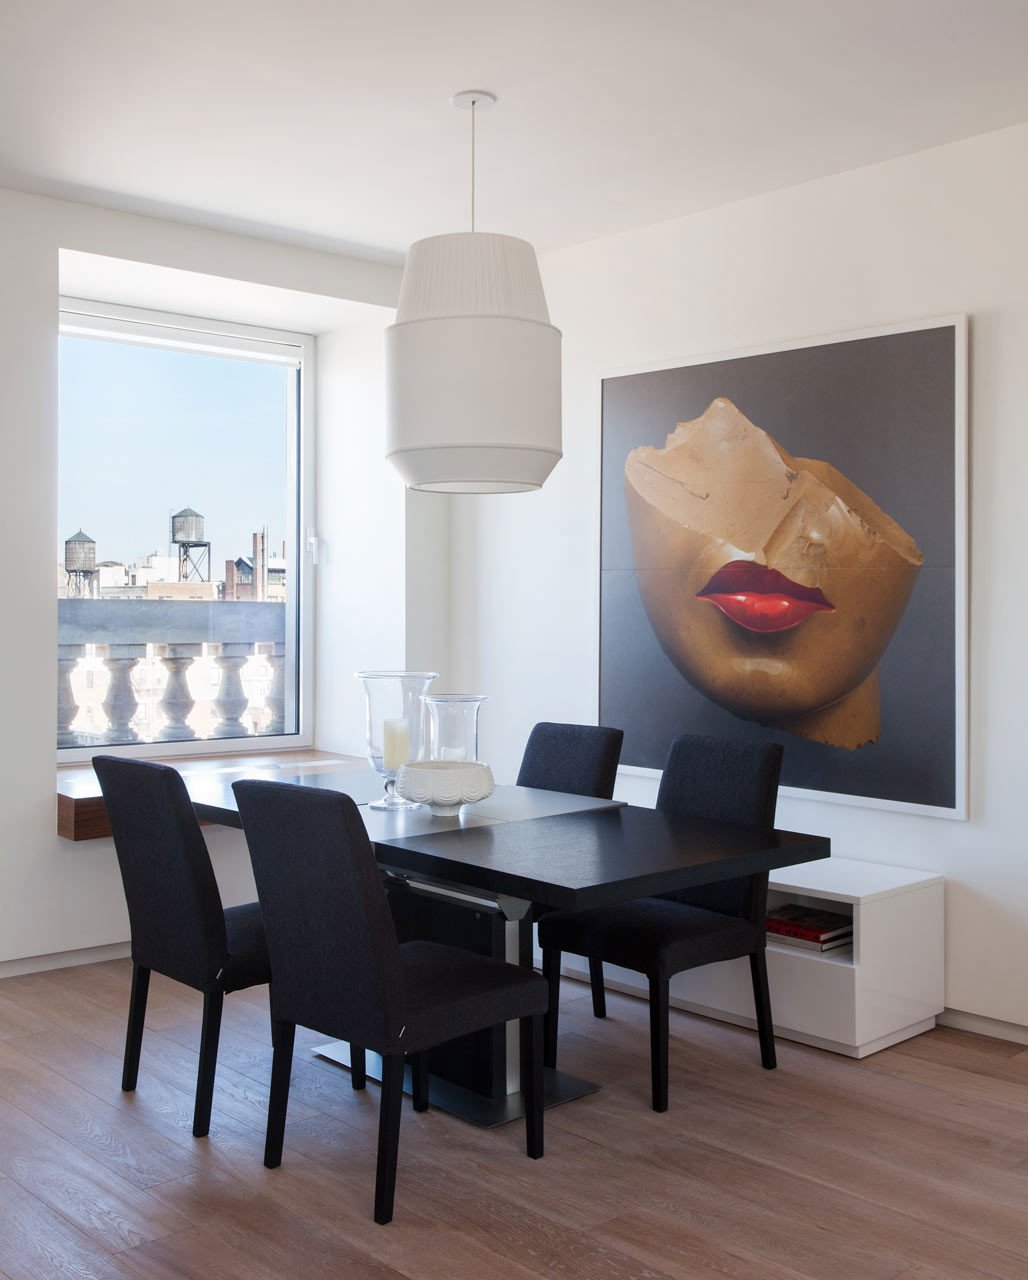 Large Dining Room Wall Decor Inspirational How to Add the Wow Factor Through Modern Wall Art